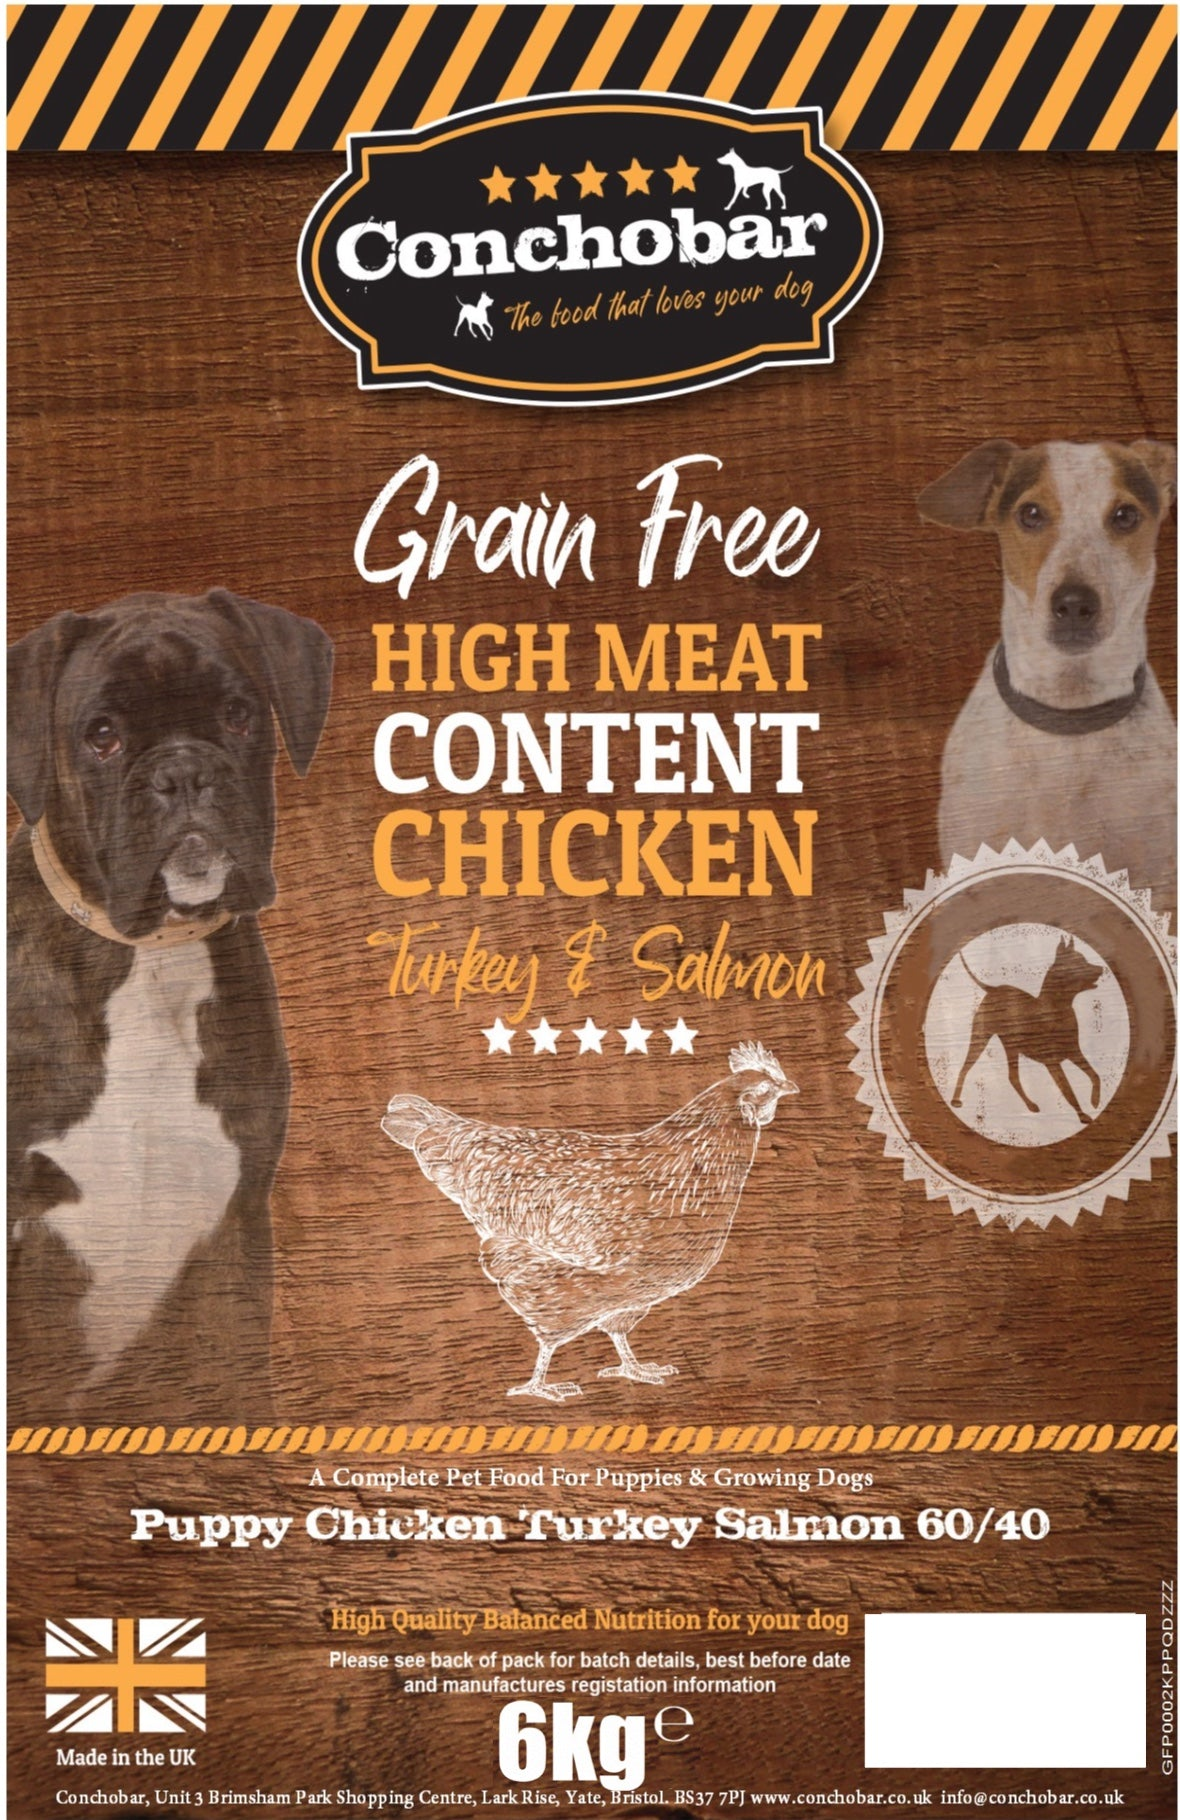 Conchobar Puppy Chicken with Turkey & Salmon 6kg - Conchobar, Puppy food - Hypoallergic grain free dog food